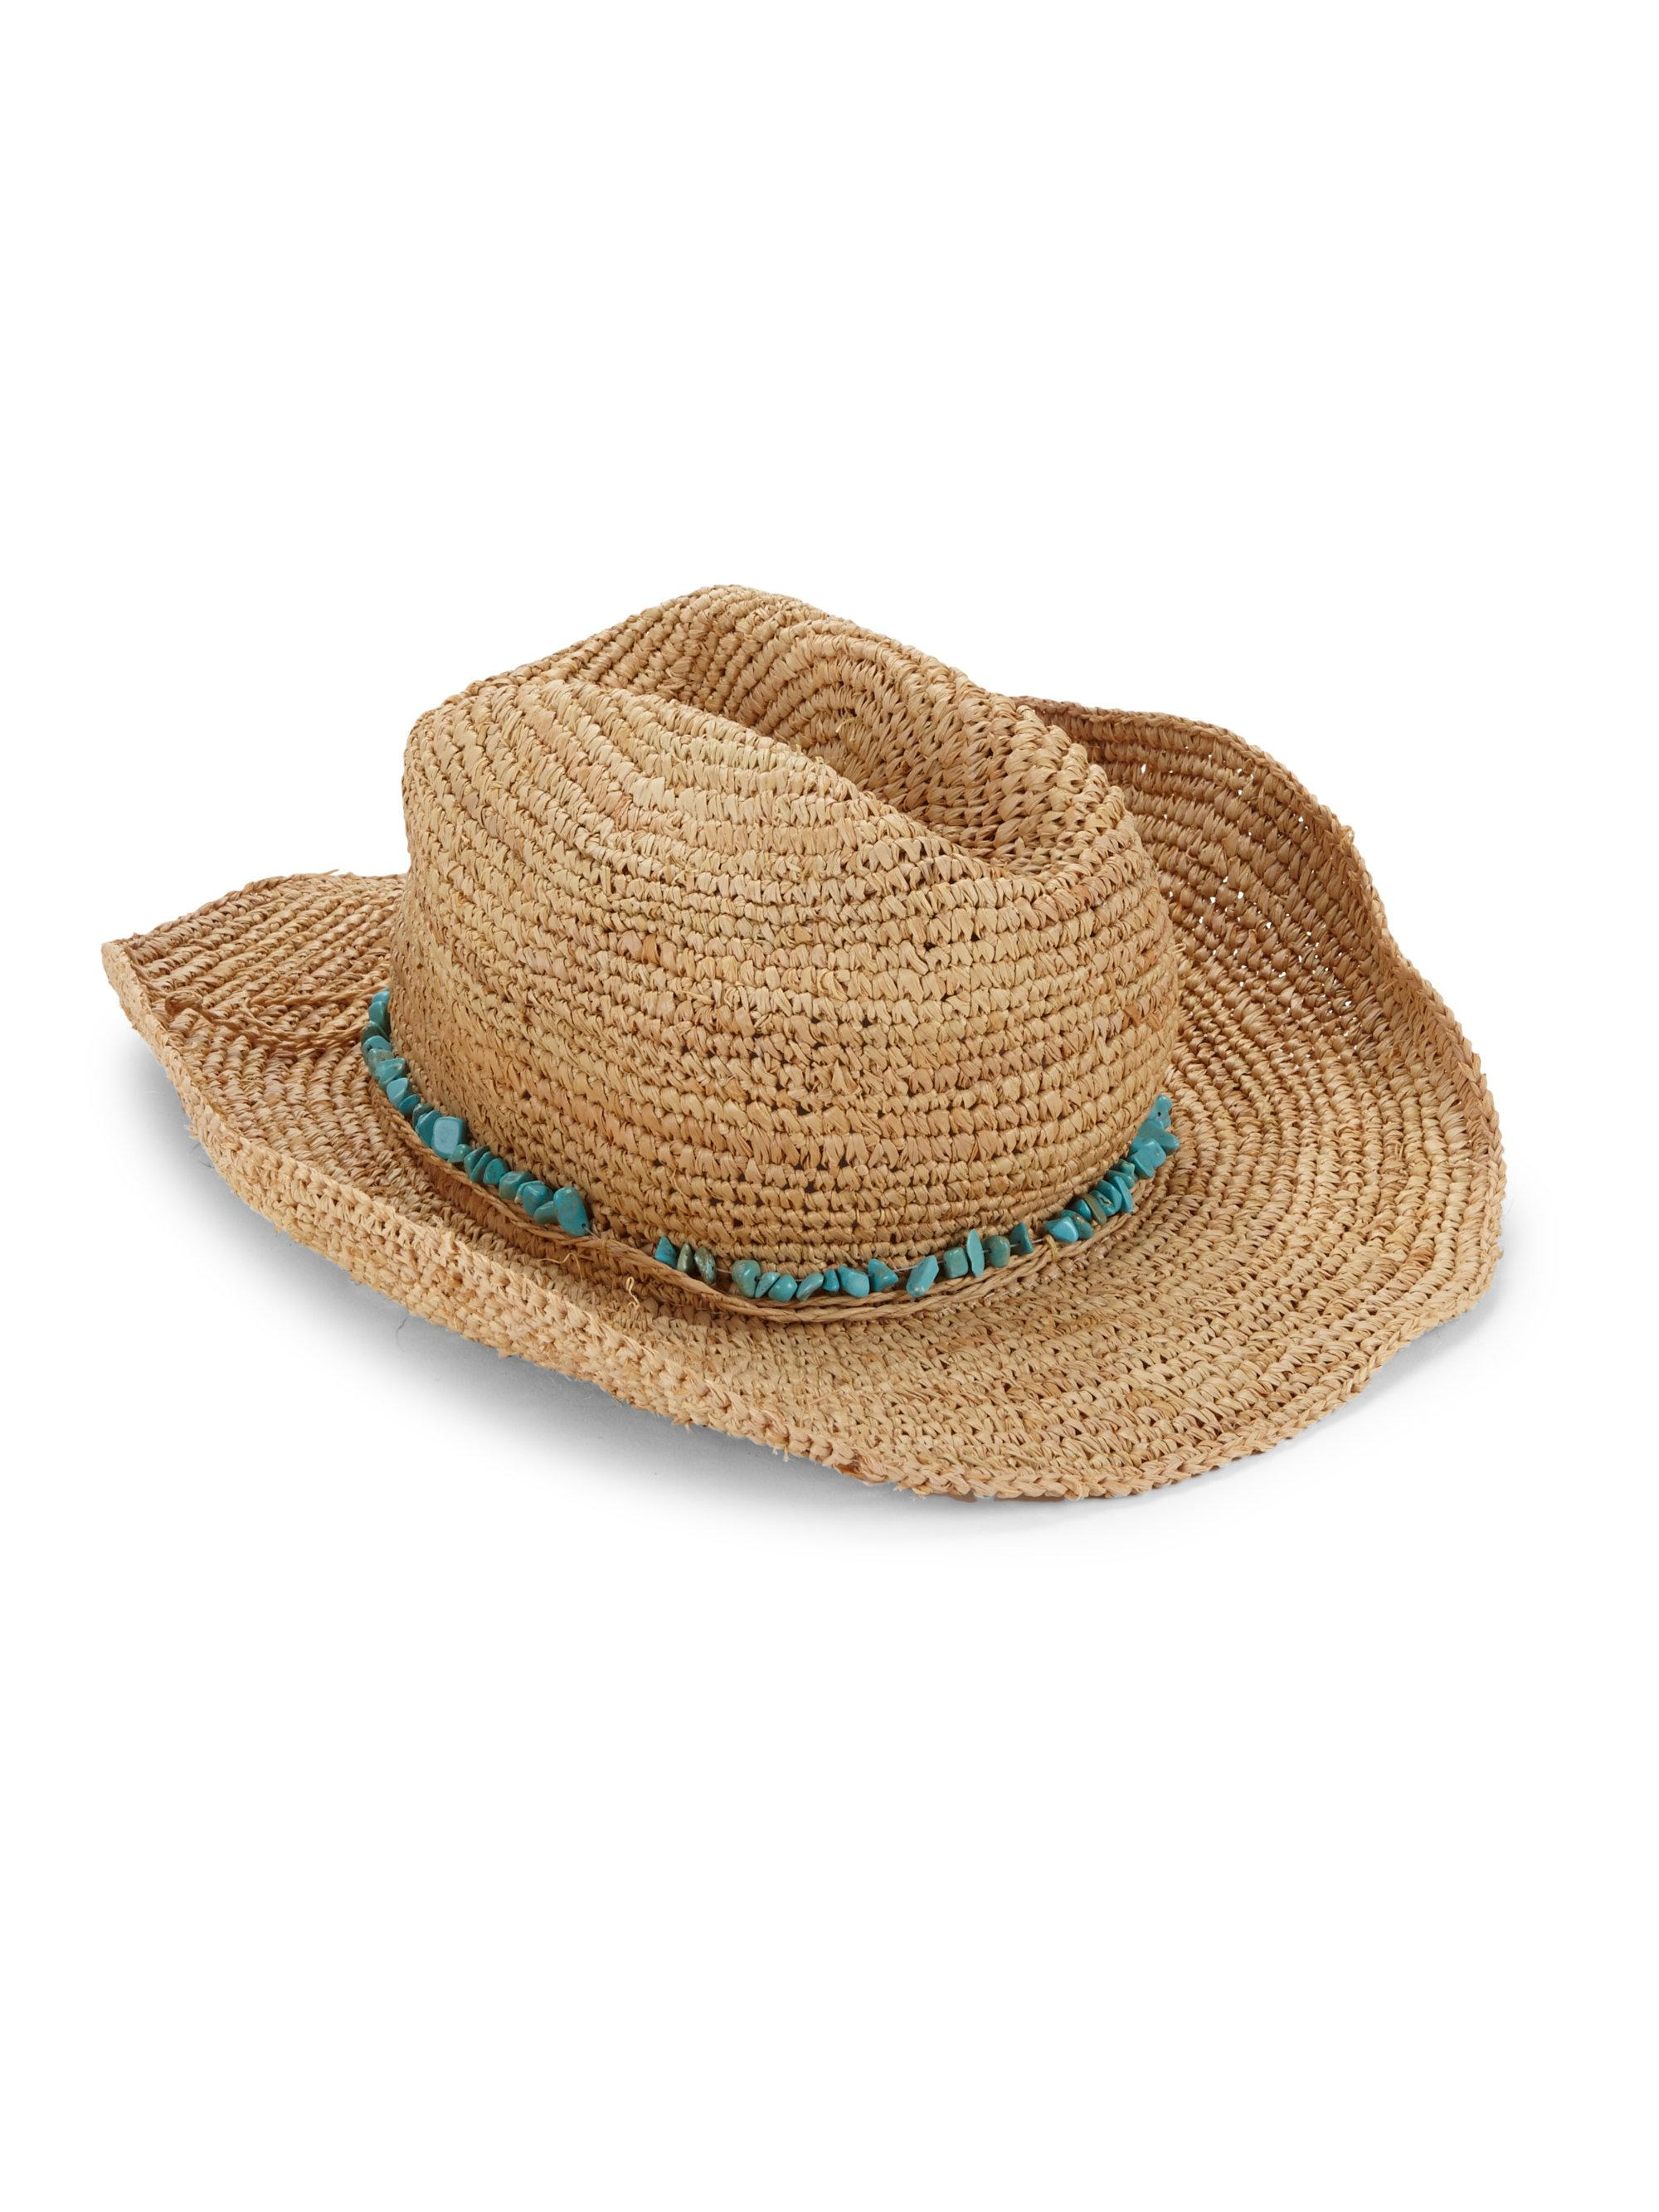 Melissa Odabash Elle Cowboy Hat in Natural - Lyst 9cac9a4ccb18